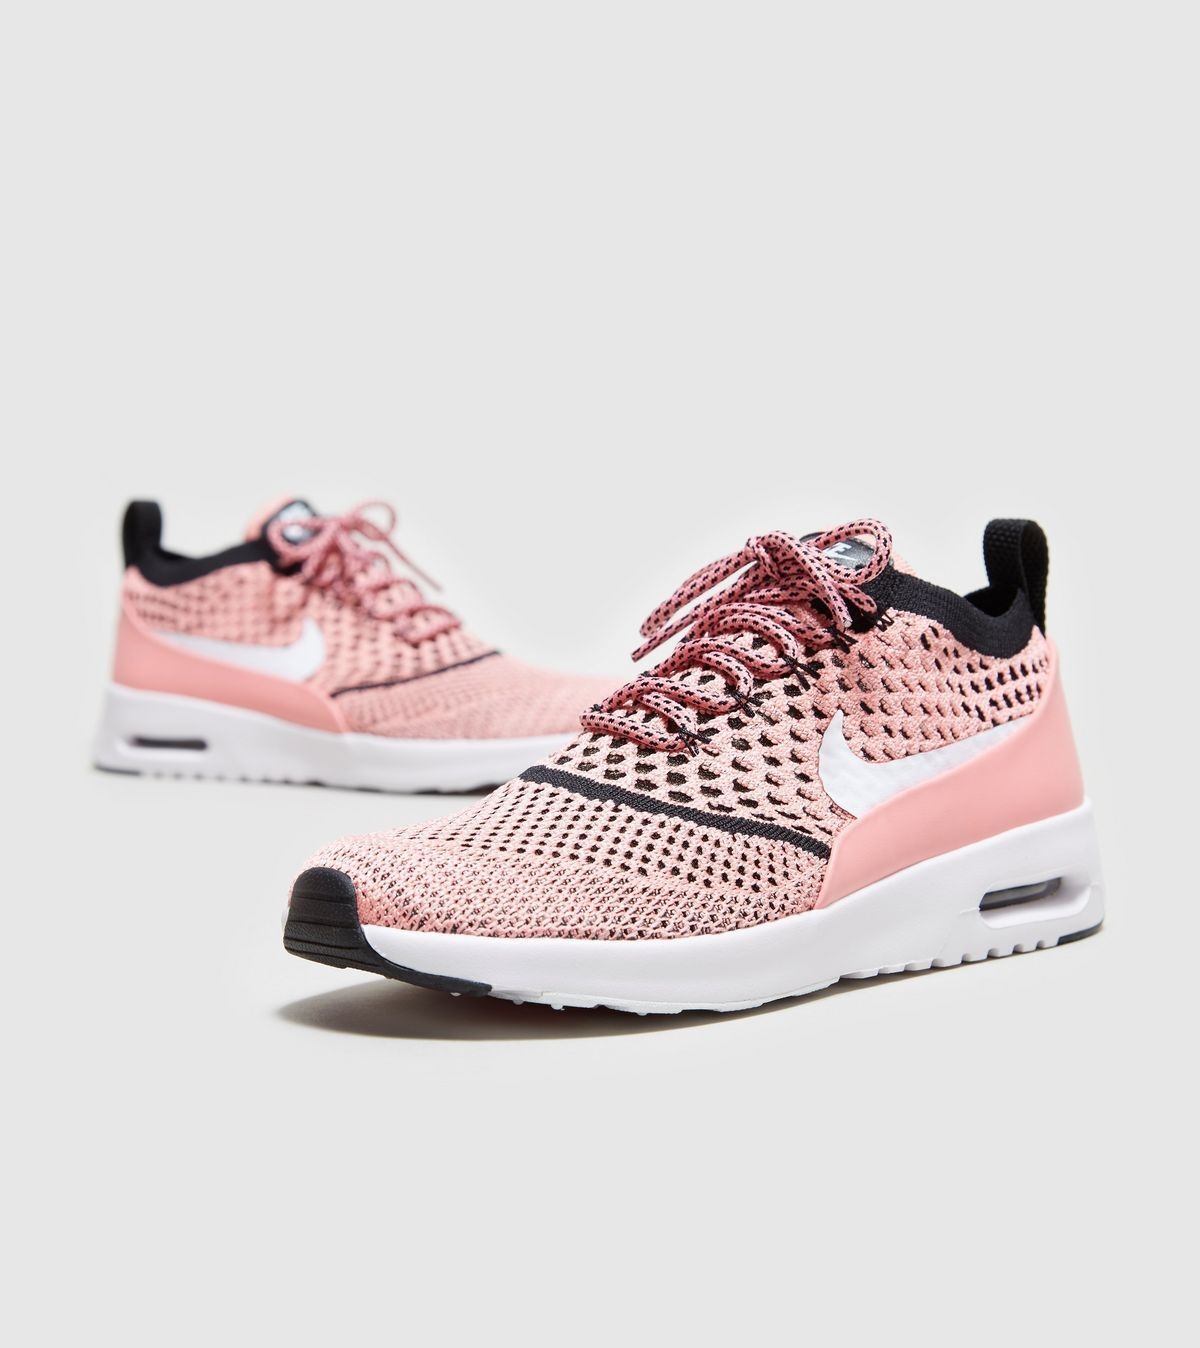 Nike Air Max Thea Flyknit Trainers Sneaker noir Rose4.5